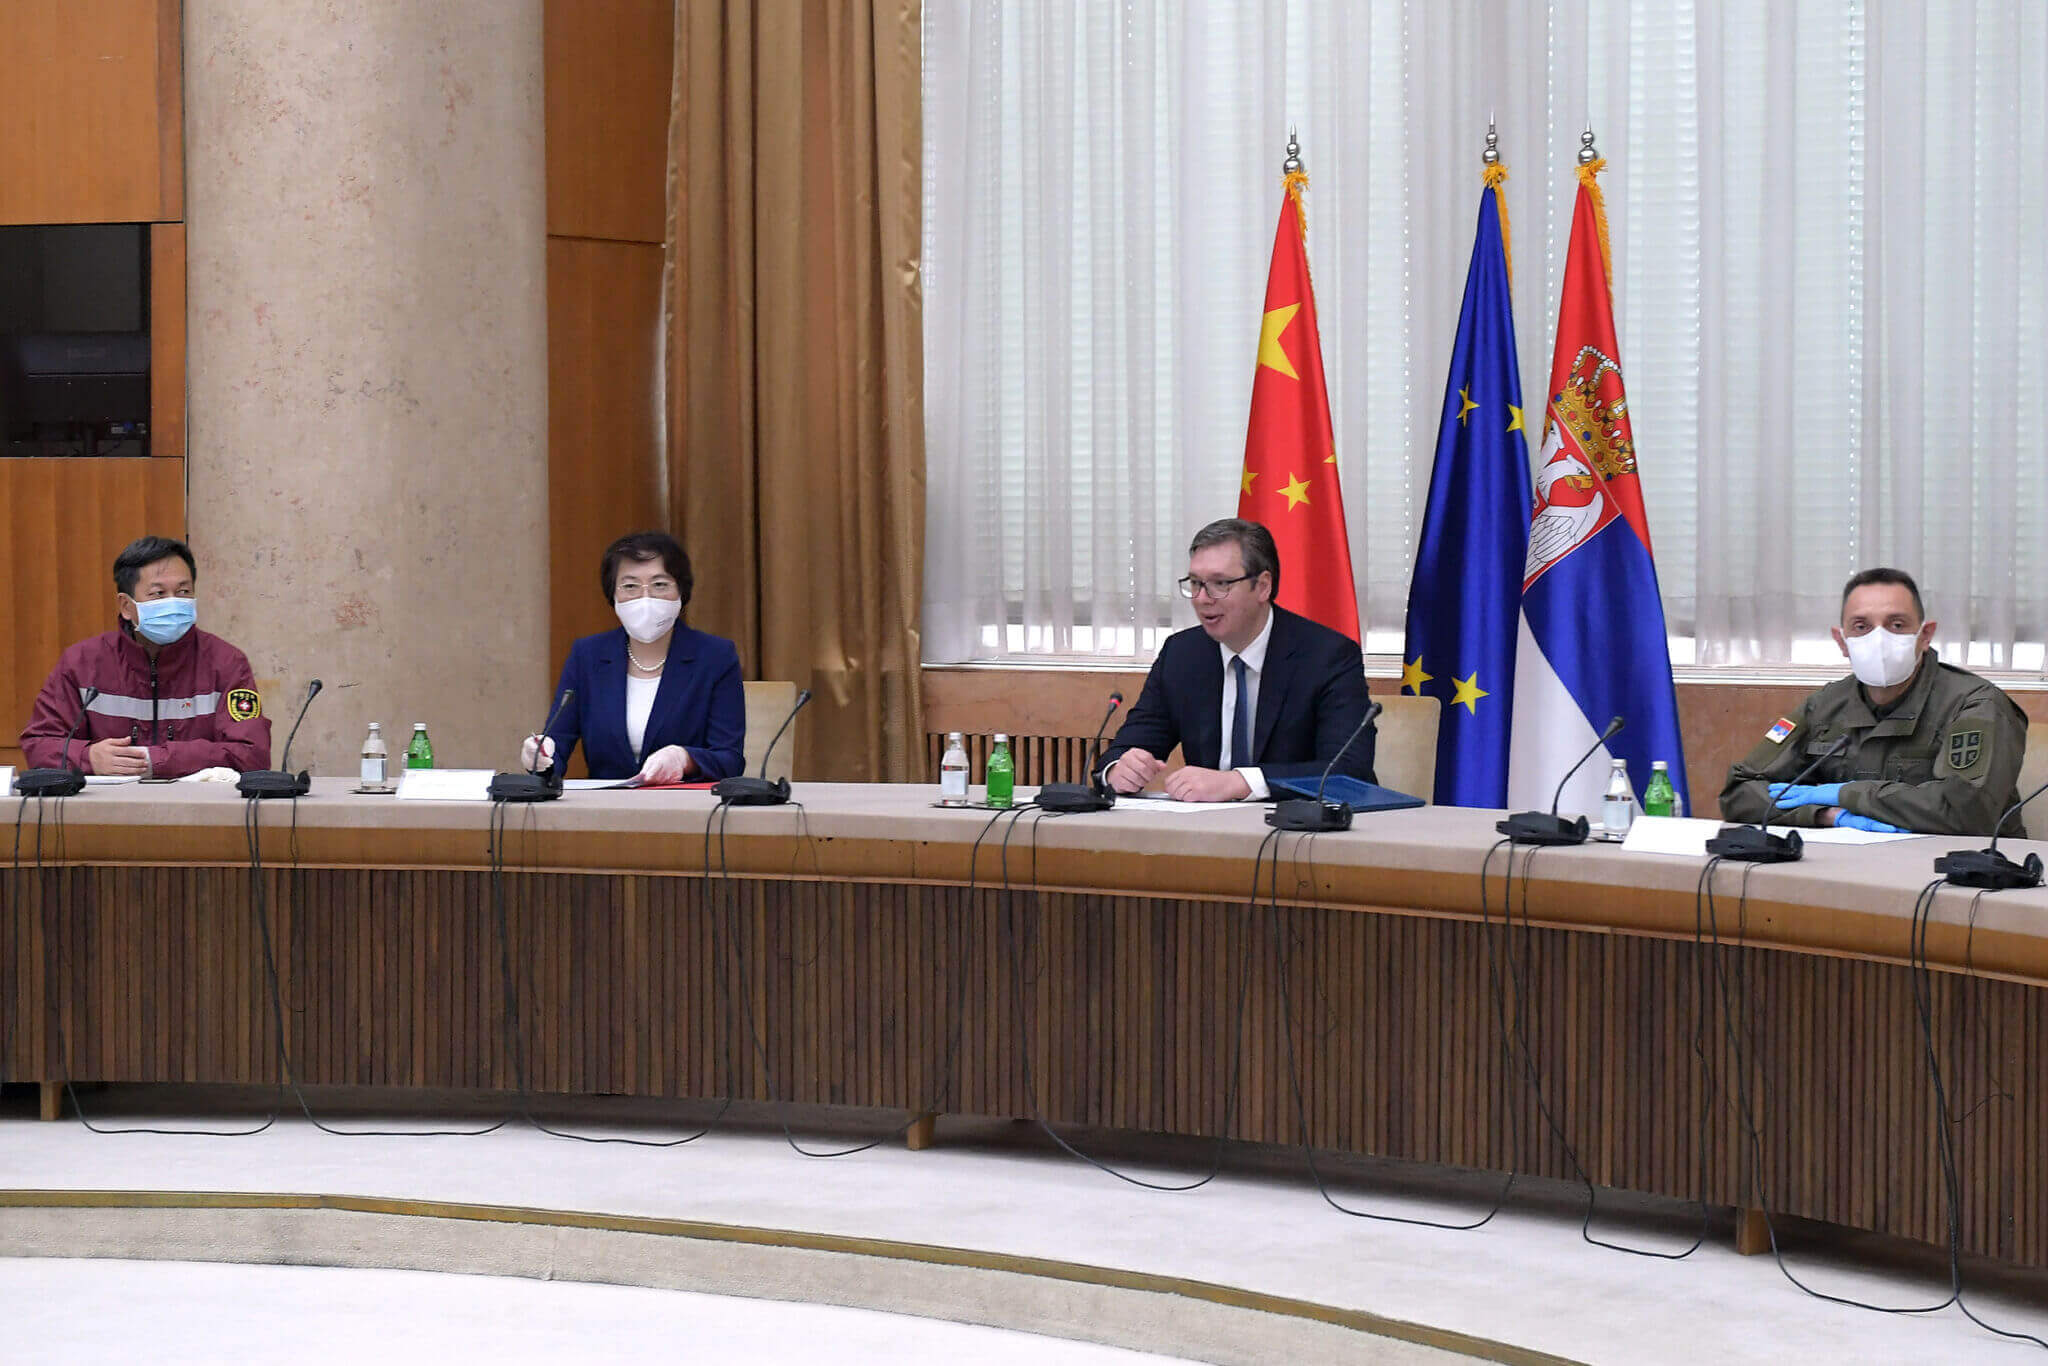 Serbia, the focal point of Chinese ''mask diplomacy'' in the Western Balkans